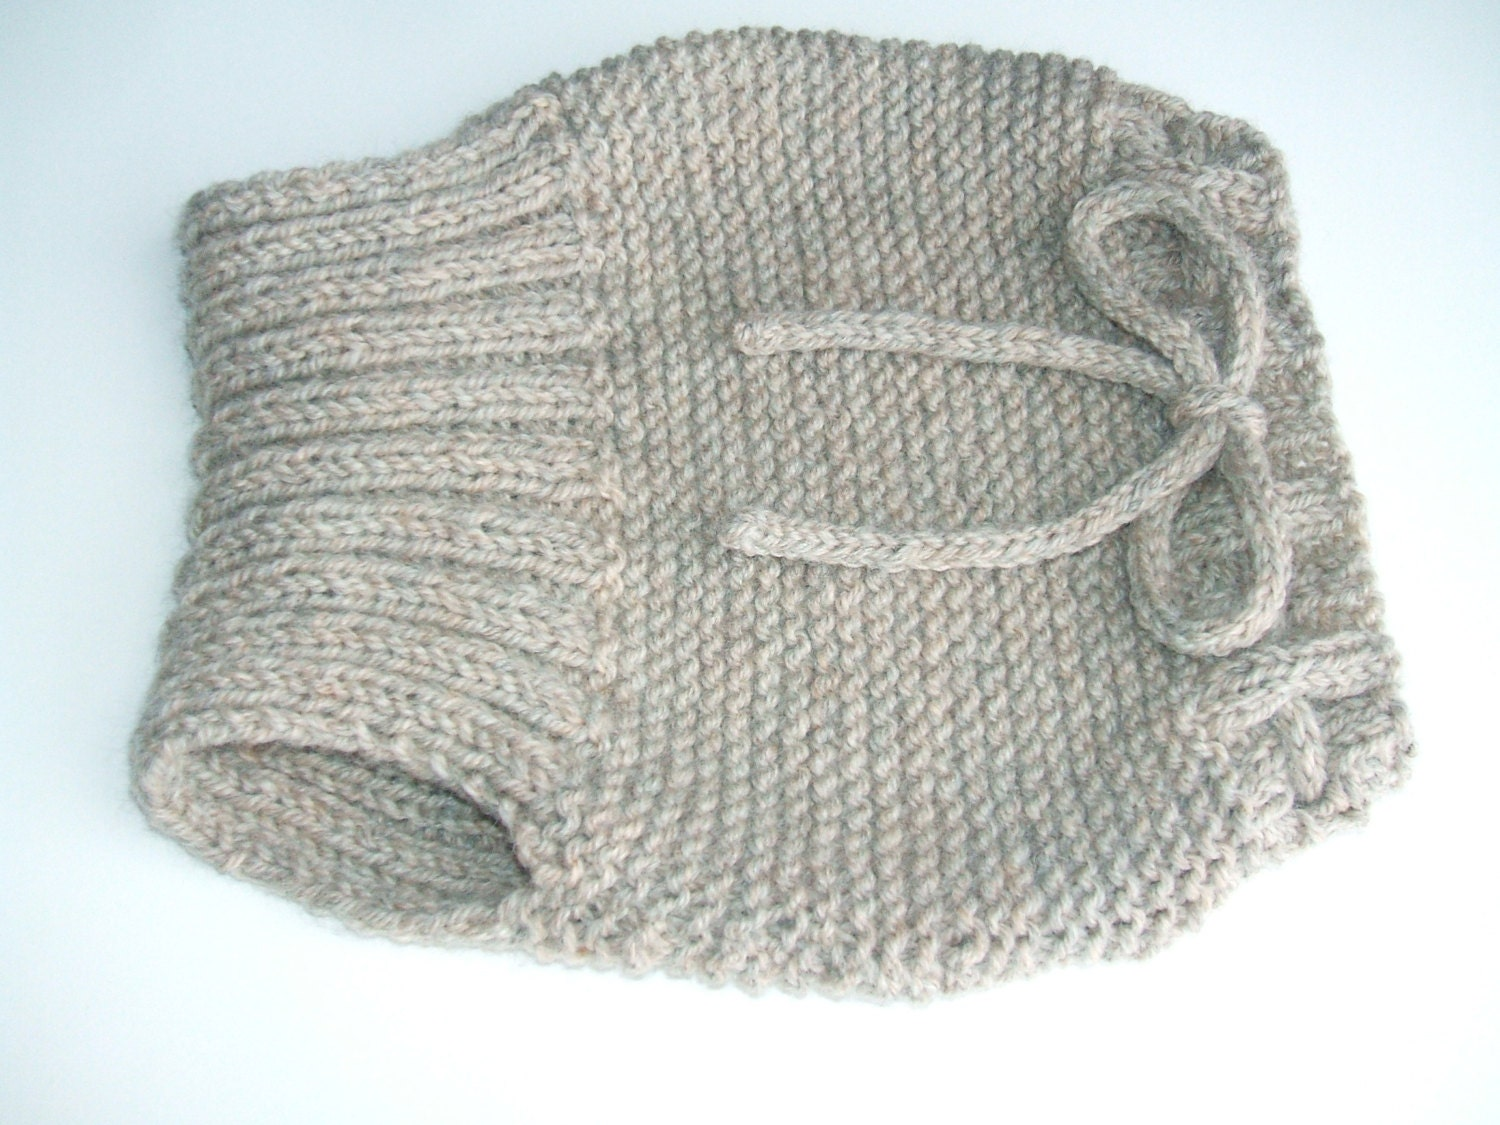 Large Hand Knit Wool Soaker Diaper Cover Tan by softandscrubby